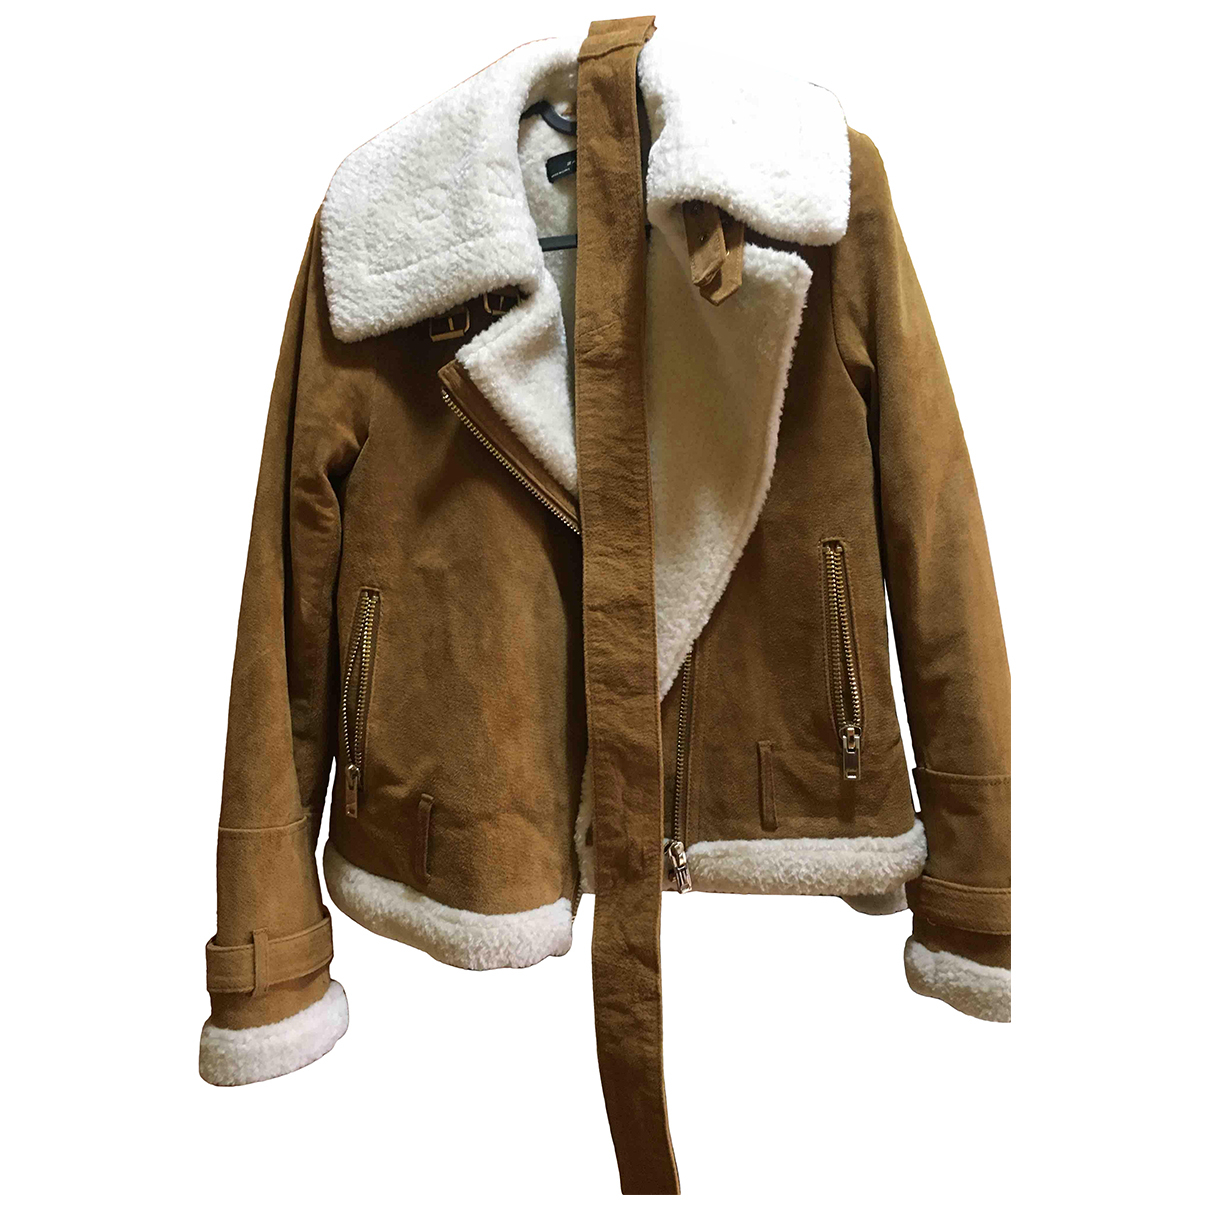 Zara \N Camel Leather jacket for Women XS International